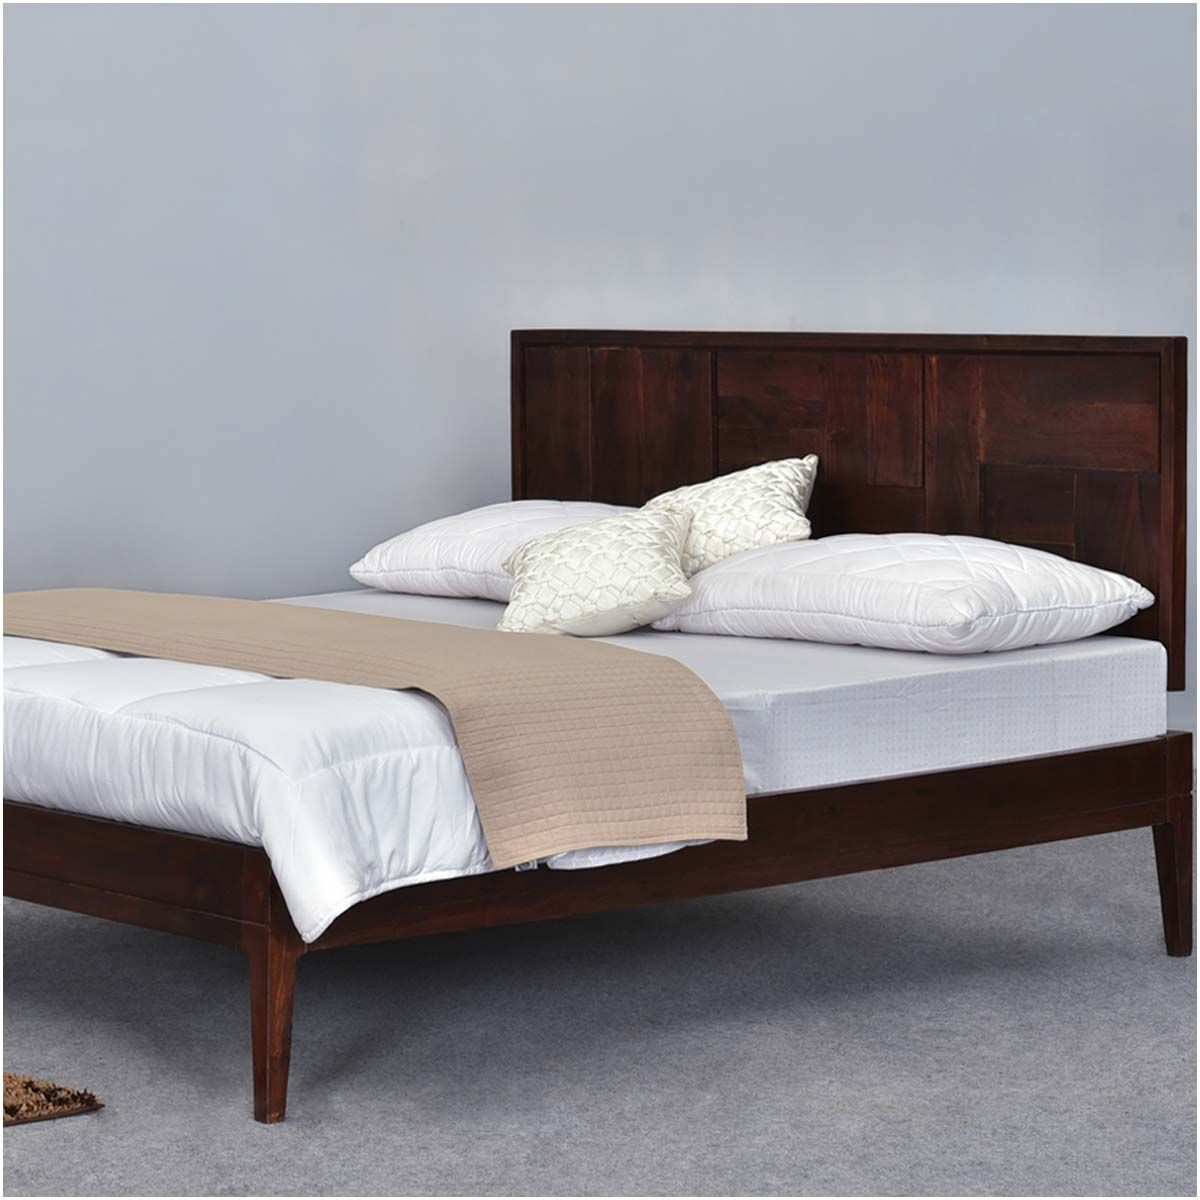 modern pioneer solid wood platform bed frame w headboard - Solid Wood Platform Bed